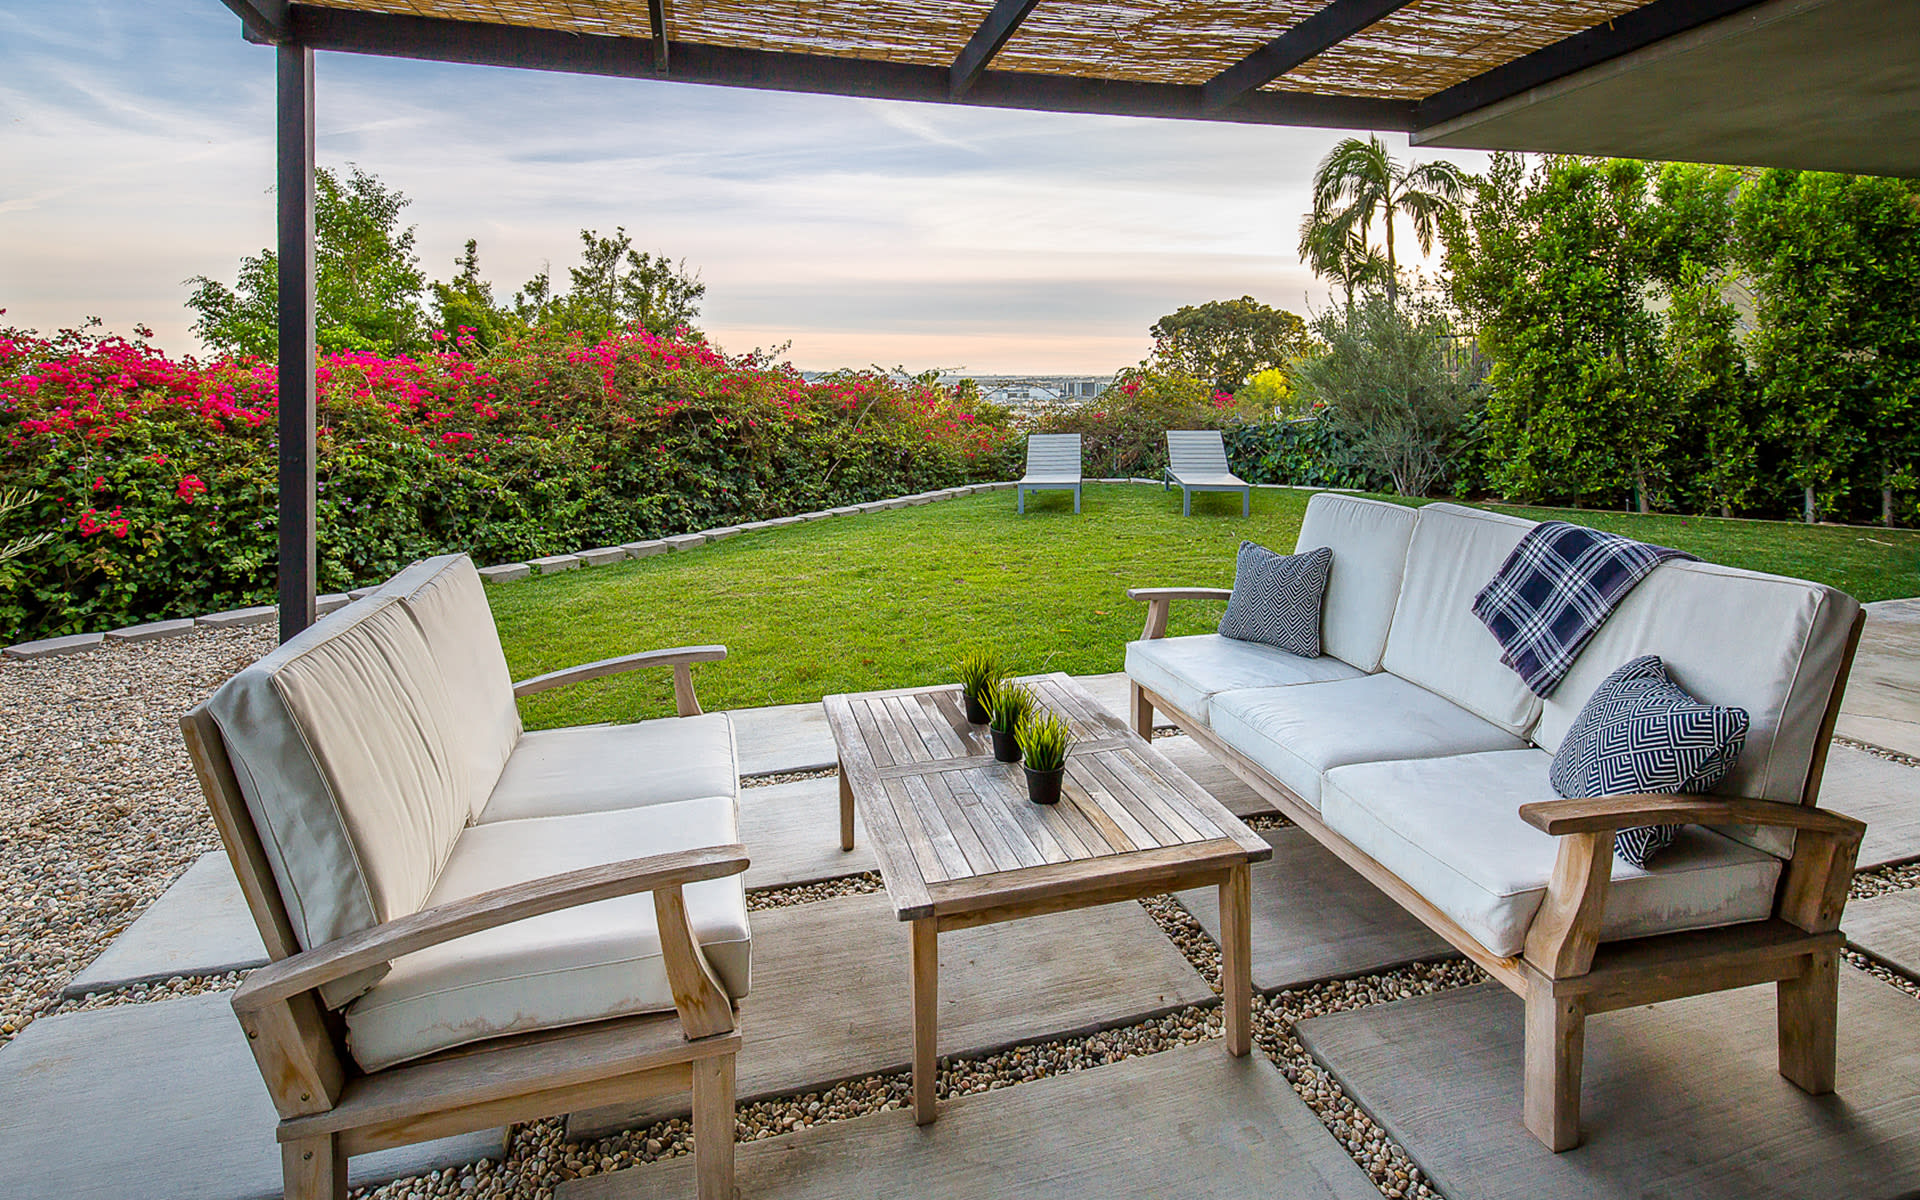 Additional photo for property listing at 8260 Marmont Ln 8260 Marmont Ln Los Angeles, California,90069 Hoa Kỳ